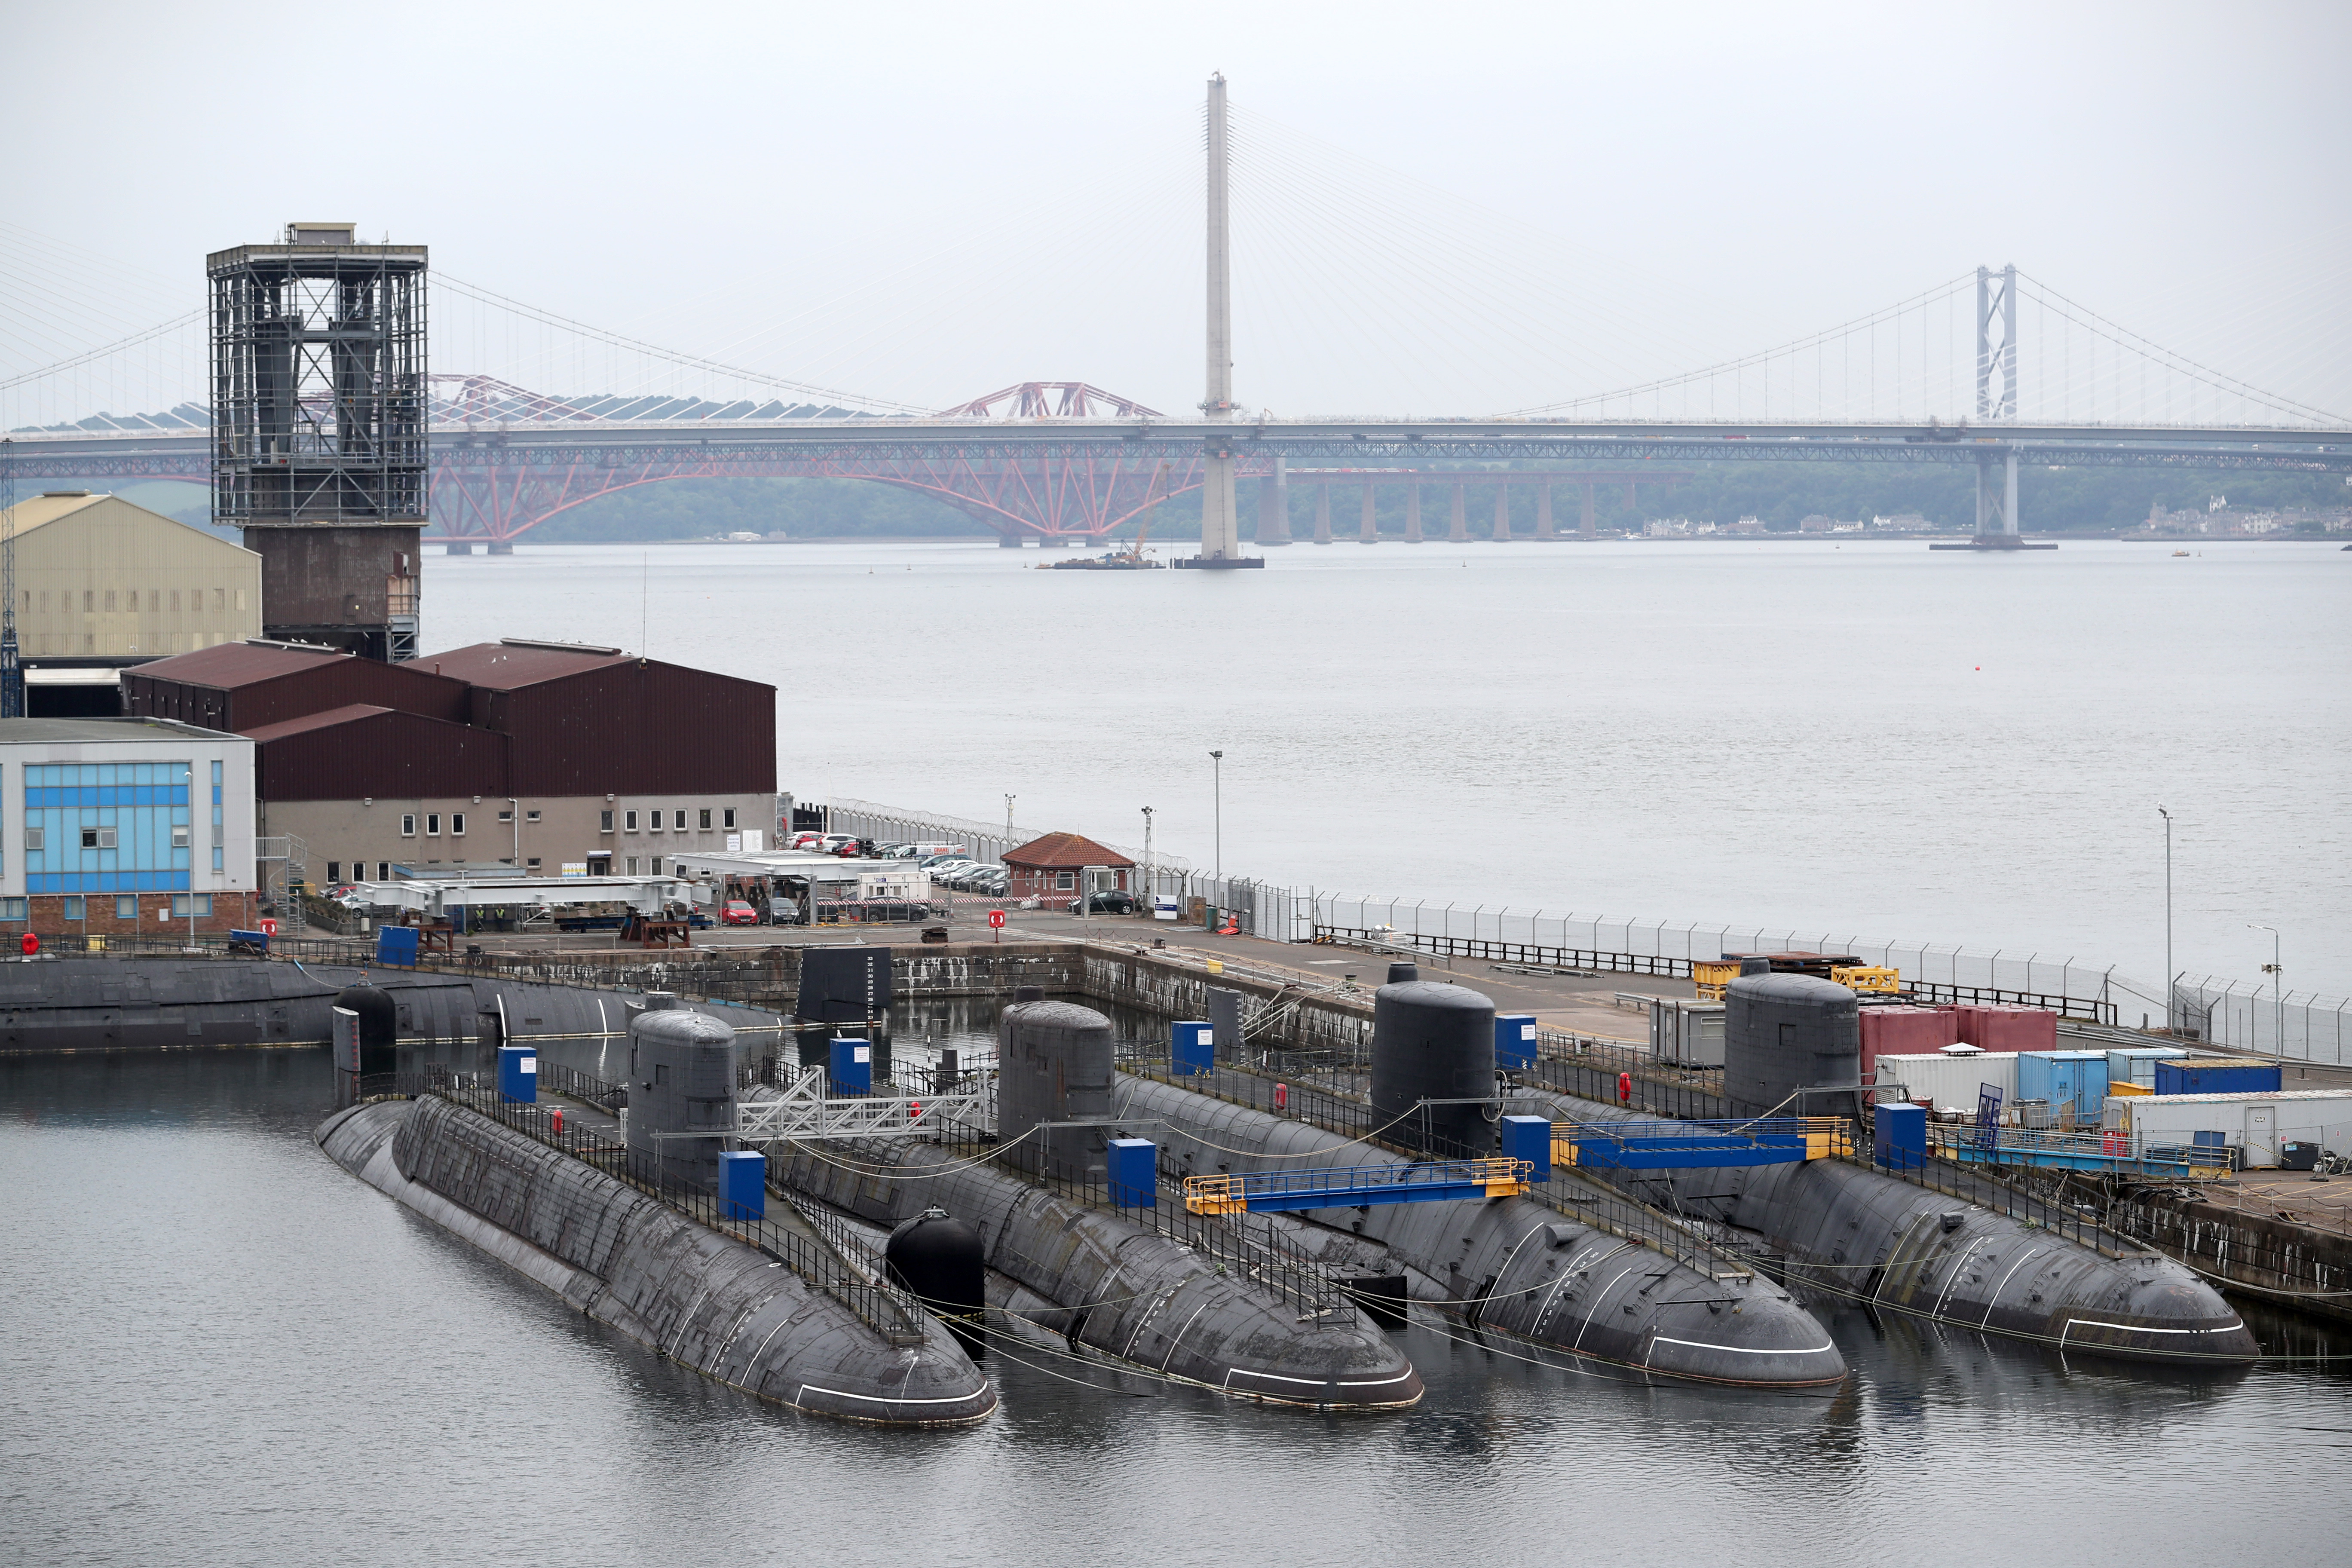 Decommissioned nuclear submarines at Rosyth Dockyard, Fife